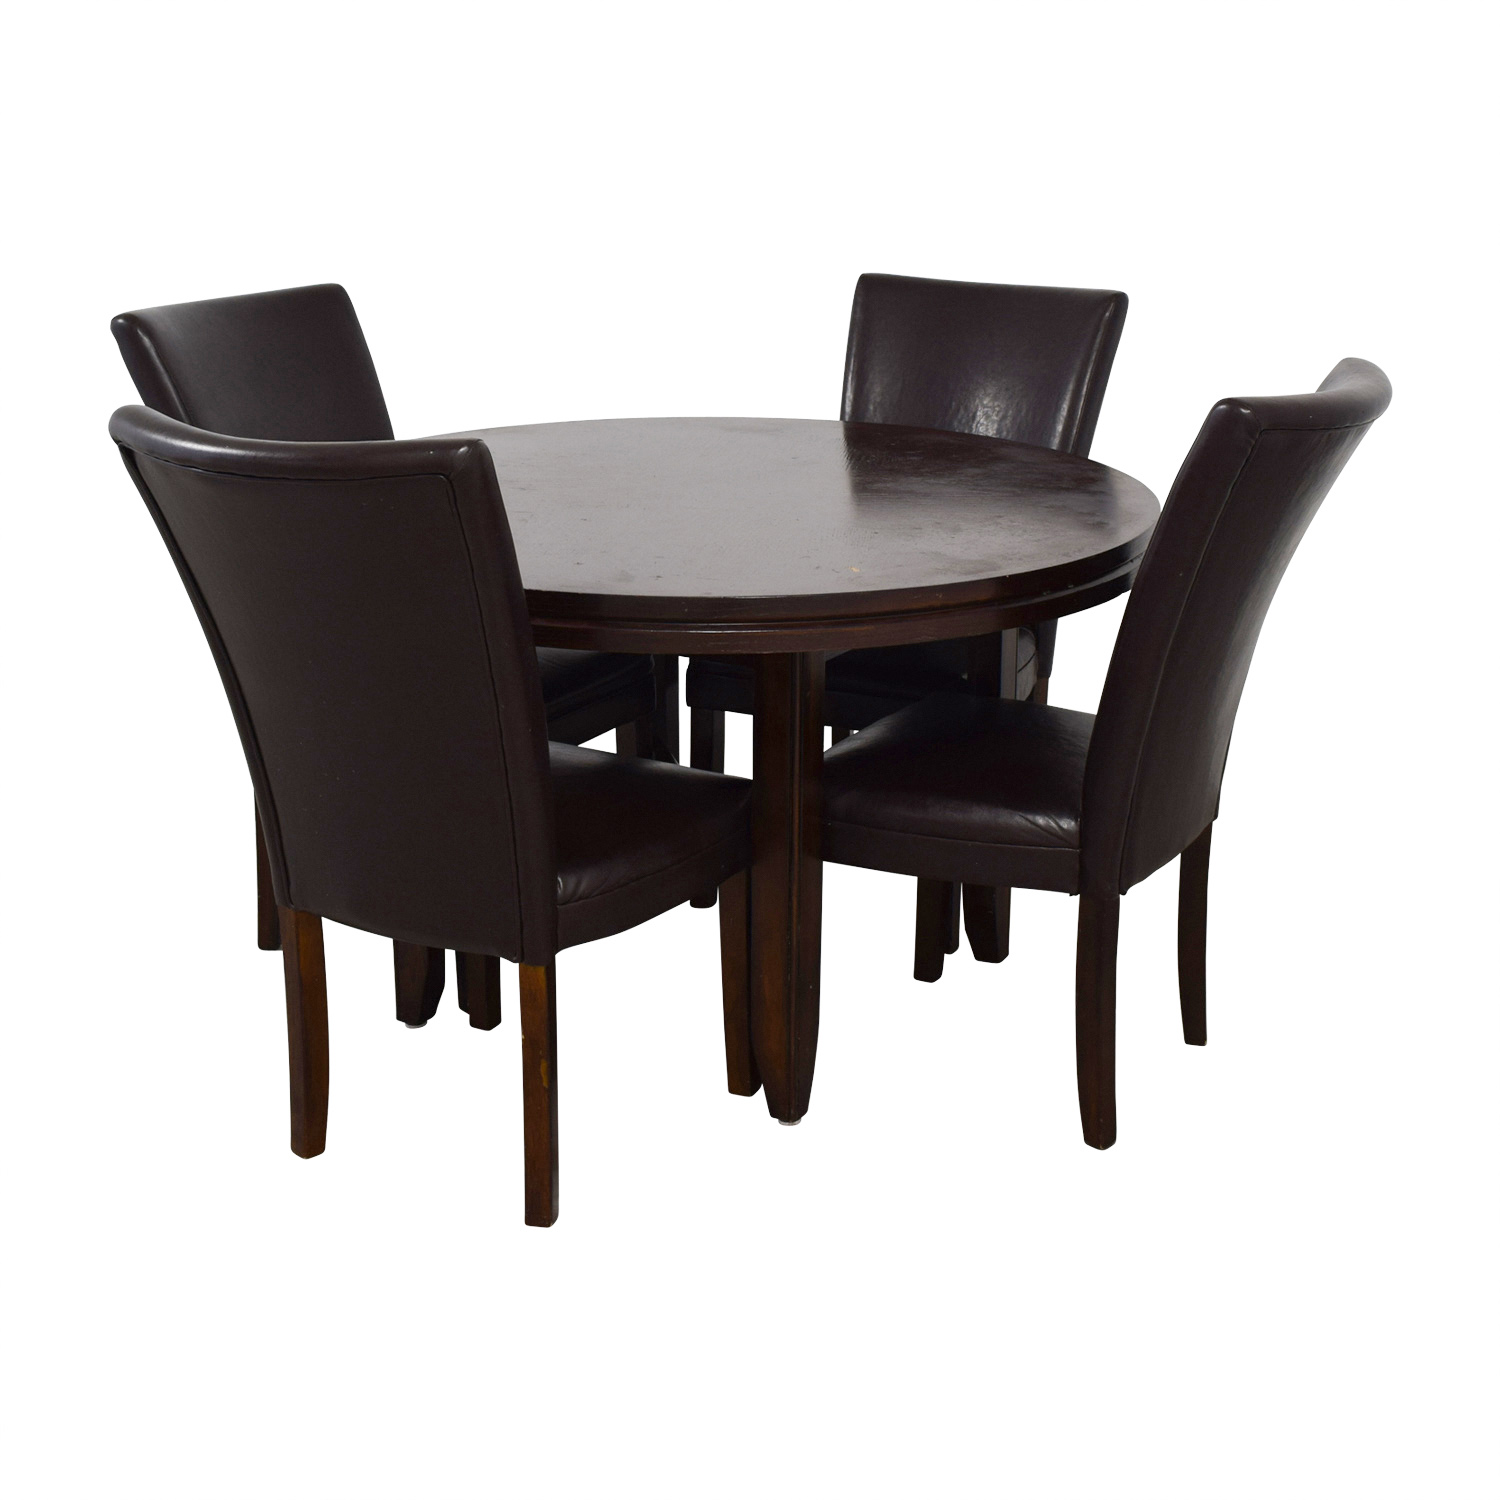 ... Shop Round Wood Dining Table With Black Leather Chairs Dining Sets ...